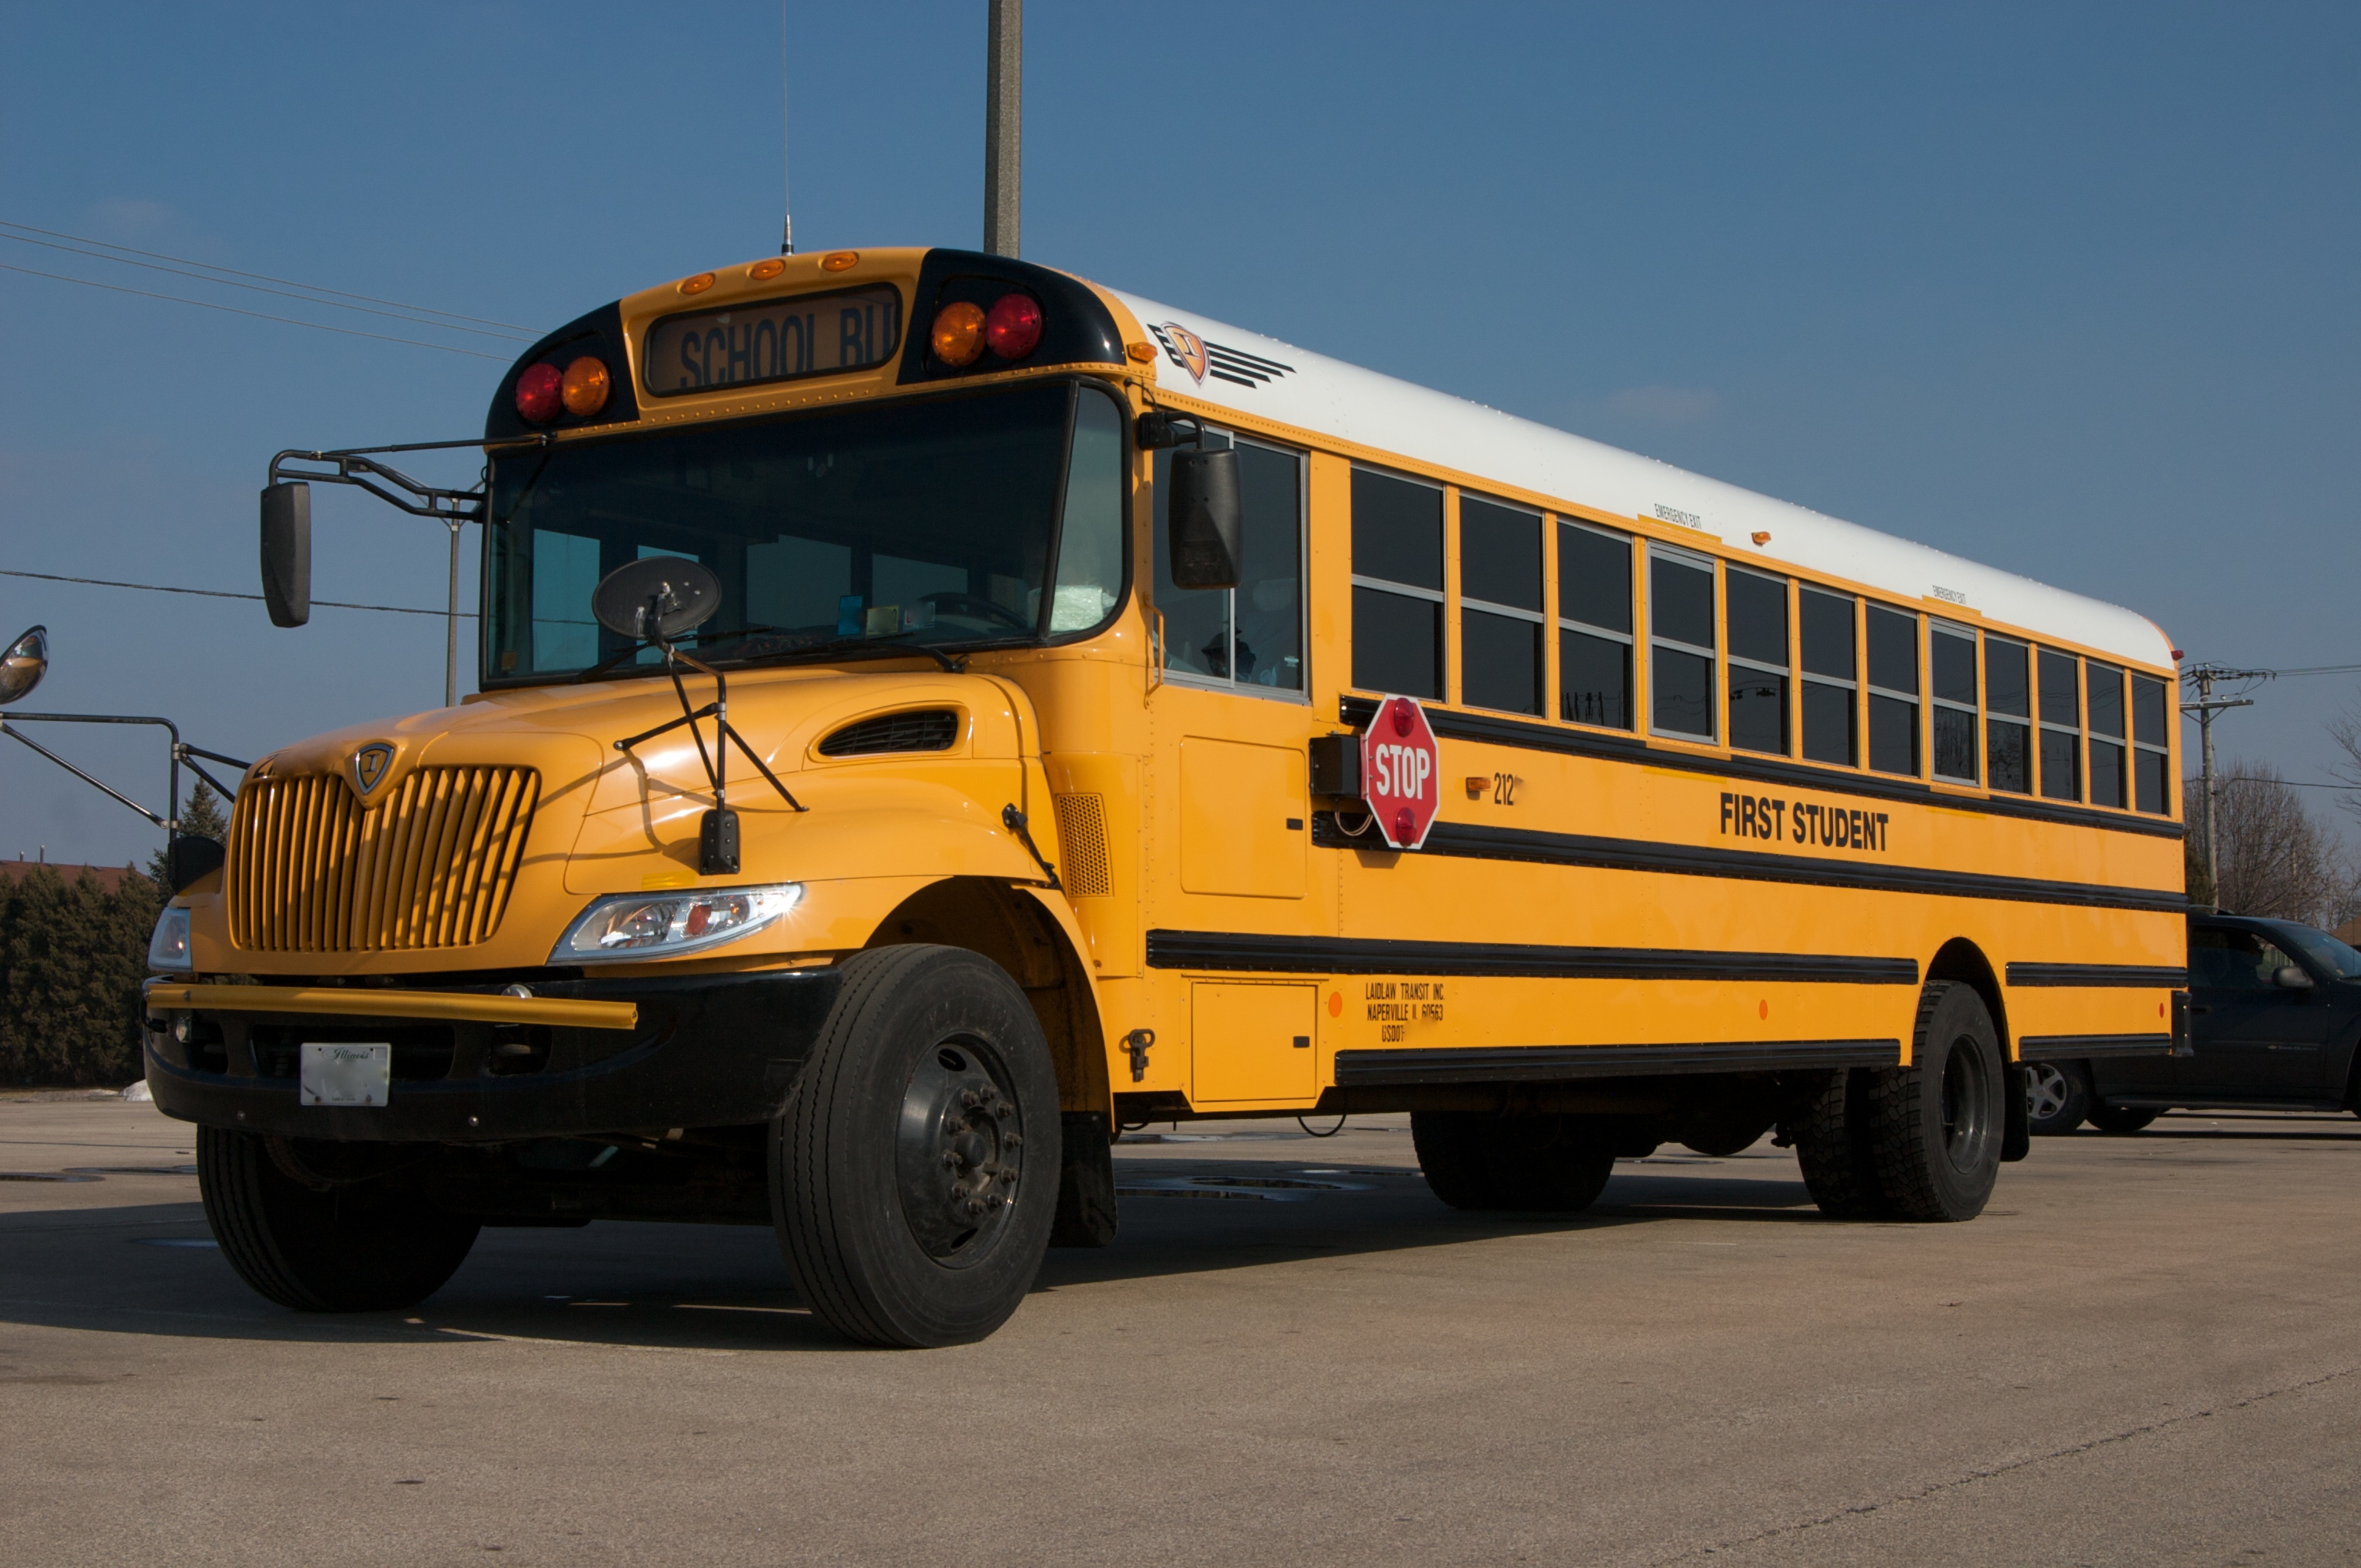 School bus service in Durham uninterrupted as tentative deal reached